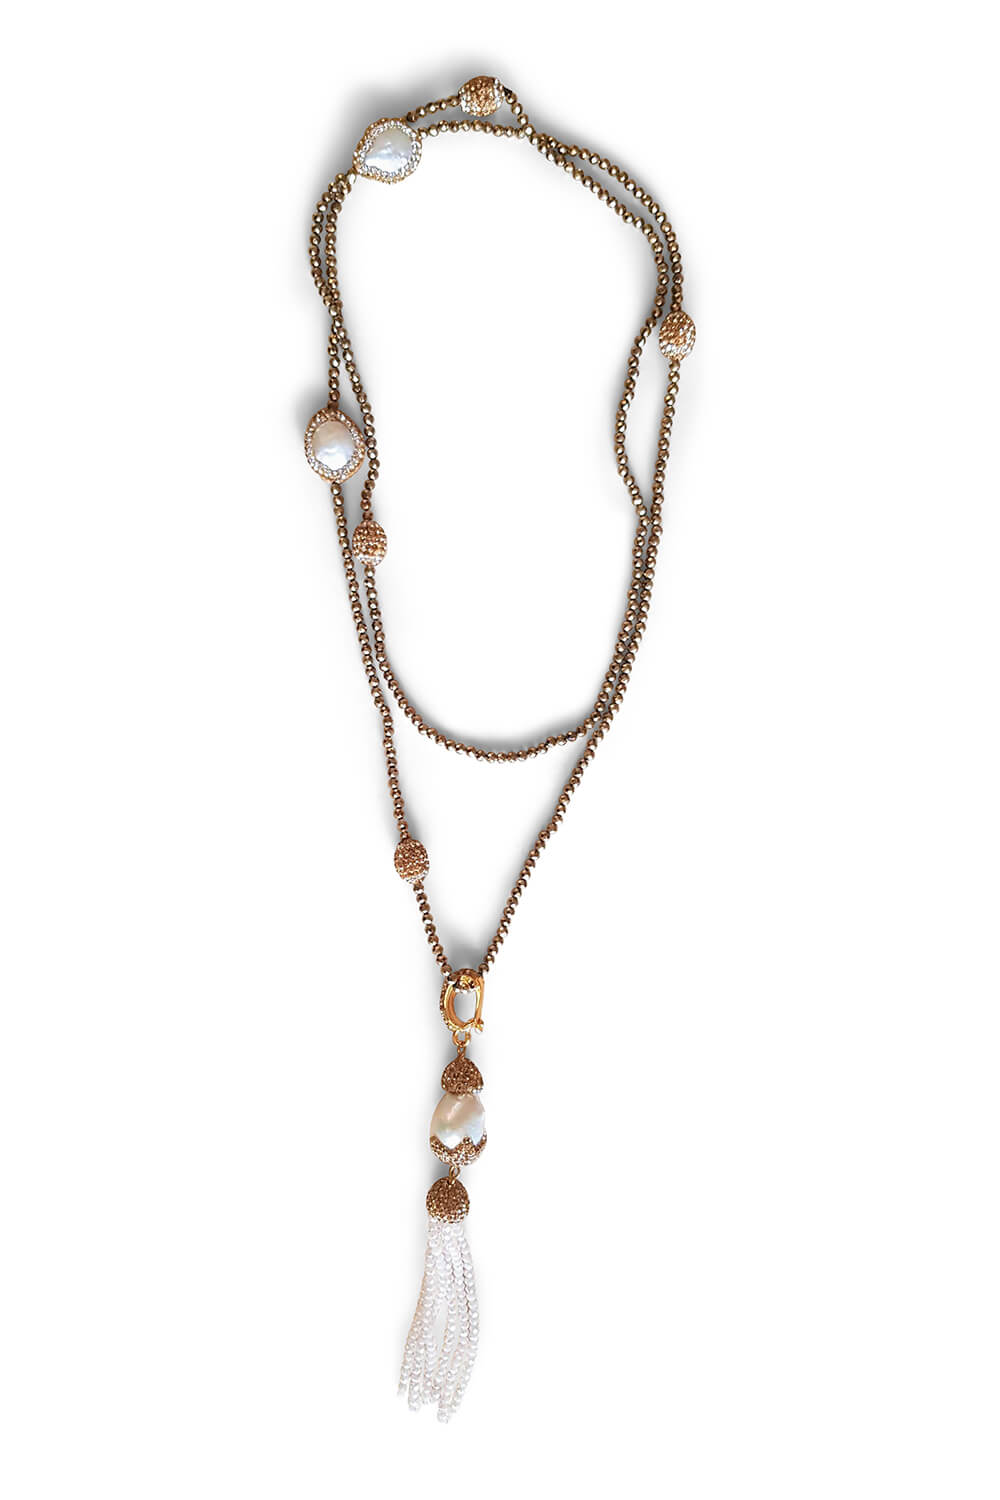 golden beaded necklace with natural freshwater pearls